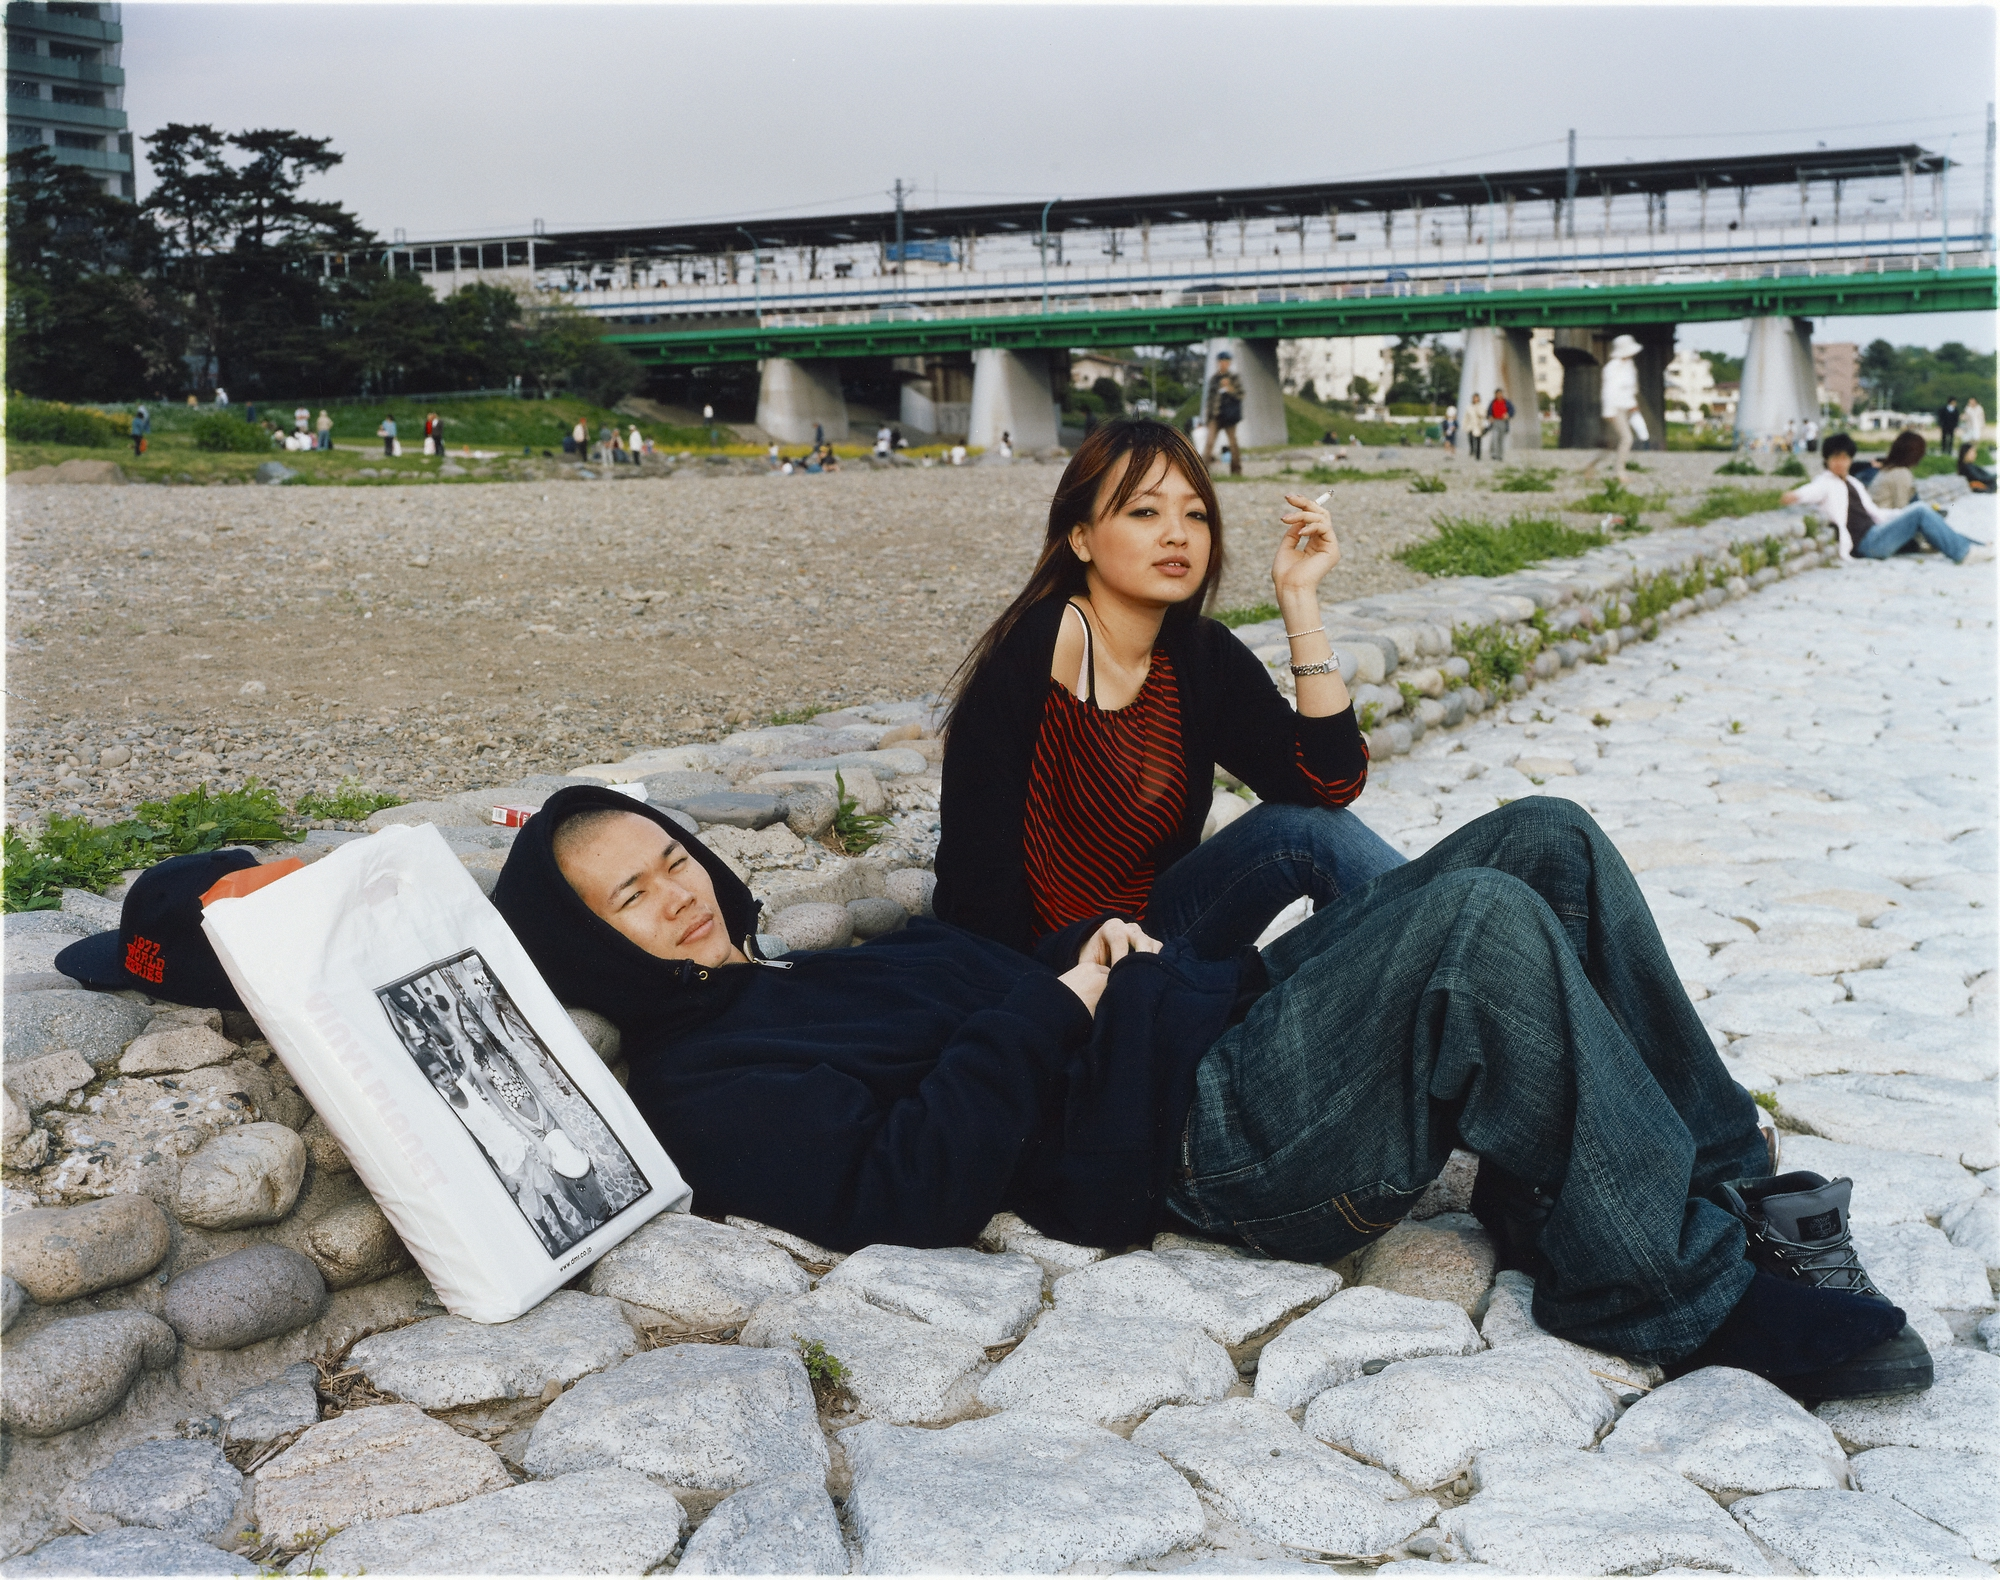 Picnic #34, 2005, Masato Seto. 16 15/16 x 21 7/16 inches. J. Paul Getty Museum. Purchased with funds provided by the Photographs Council. © Masato Seto - See more at: http://blogs.getty.edu/iris/?p=19524&preview=true&preview_id=19524&preview_nonce=3c13e75aeb#sthash.F66nqPWm.dpuf